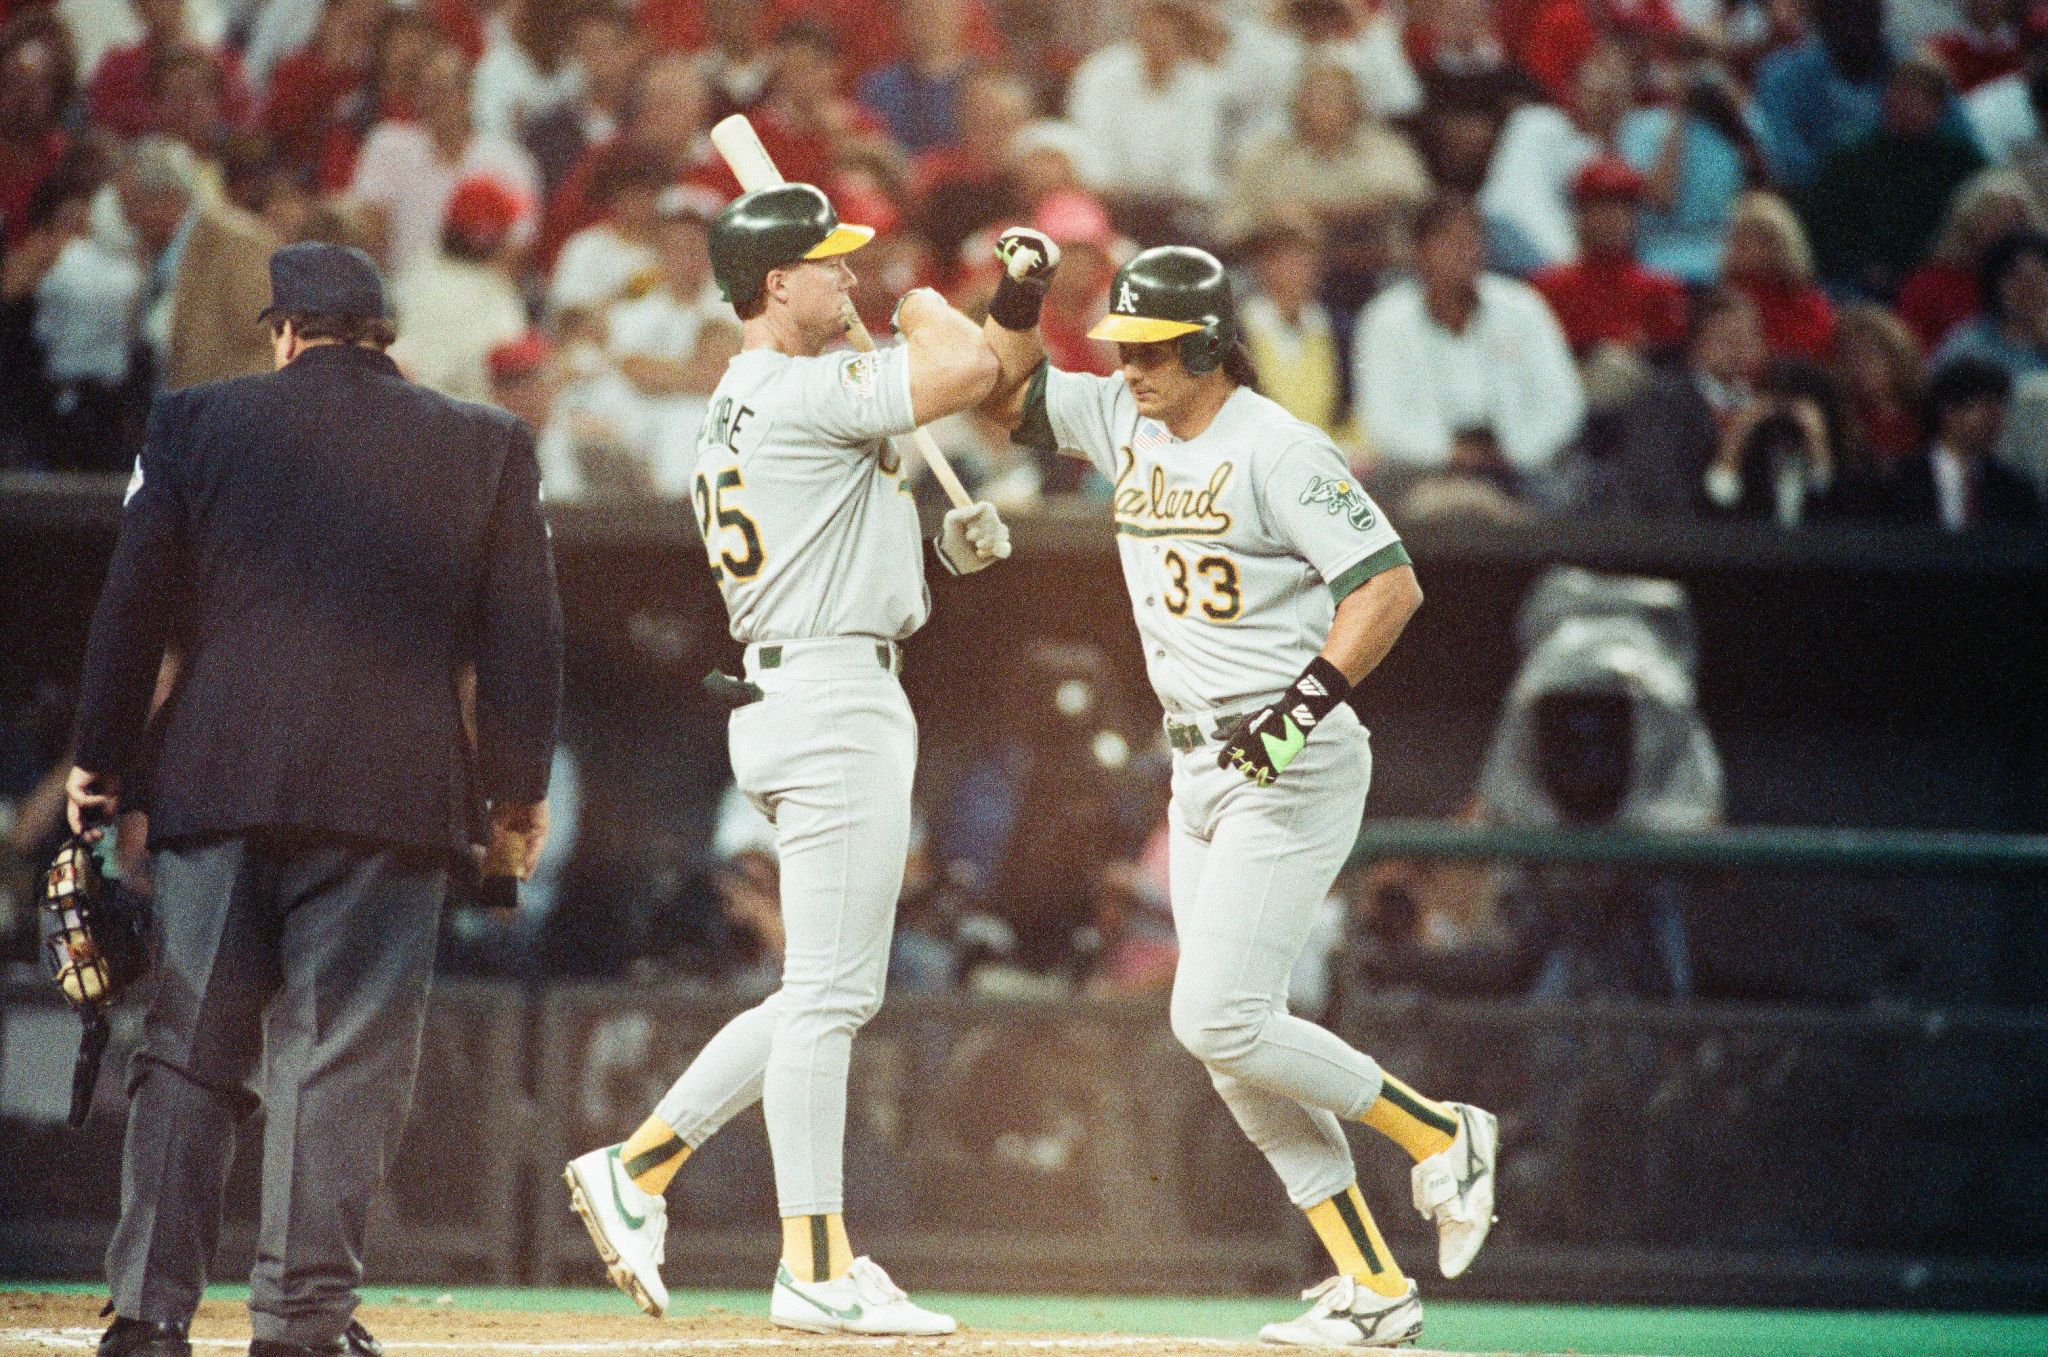 This World Series game 30 years ago marked the beginning of the end for the A's dynasty